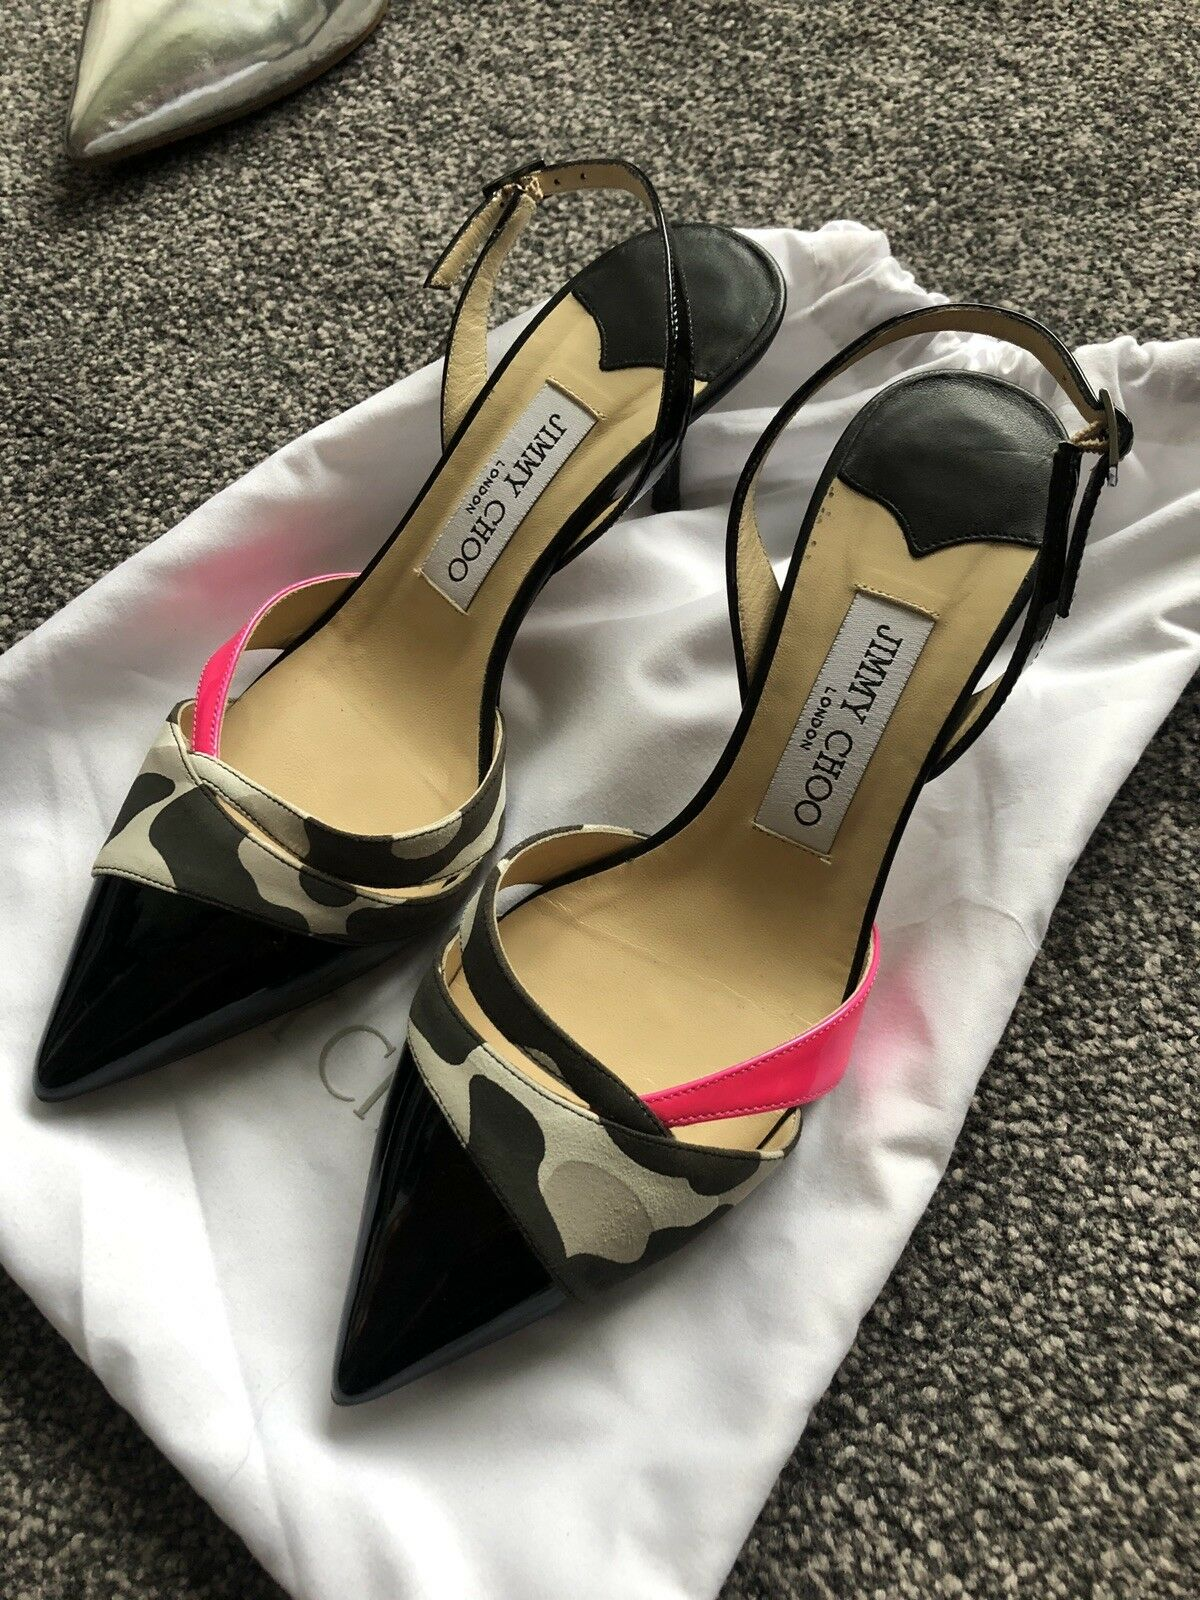 Stunning Jimmy Choo Camo Pink&Black Ankle Strap Heels Size 37.5 UK 4.5